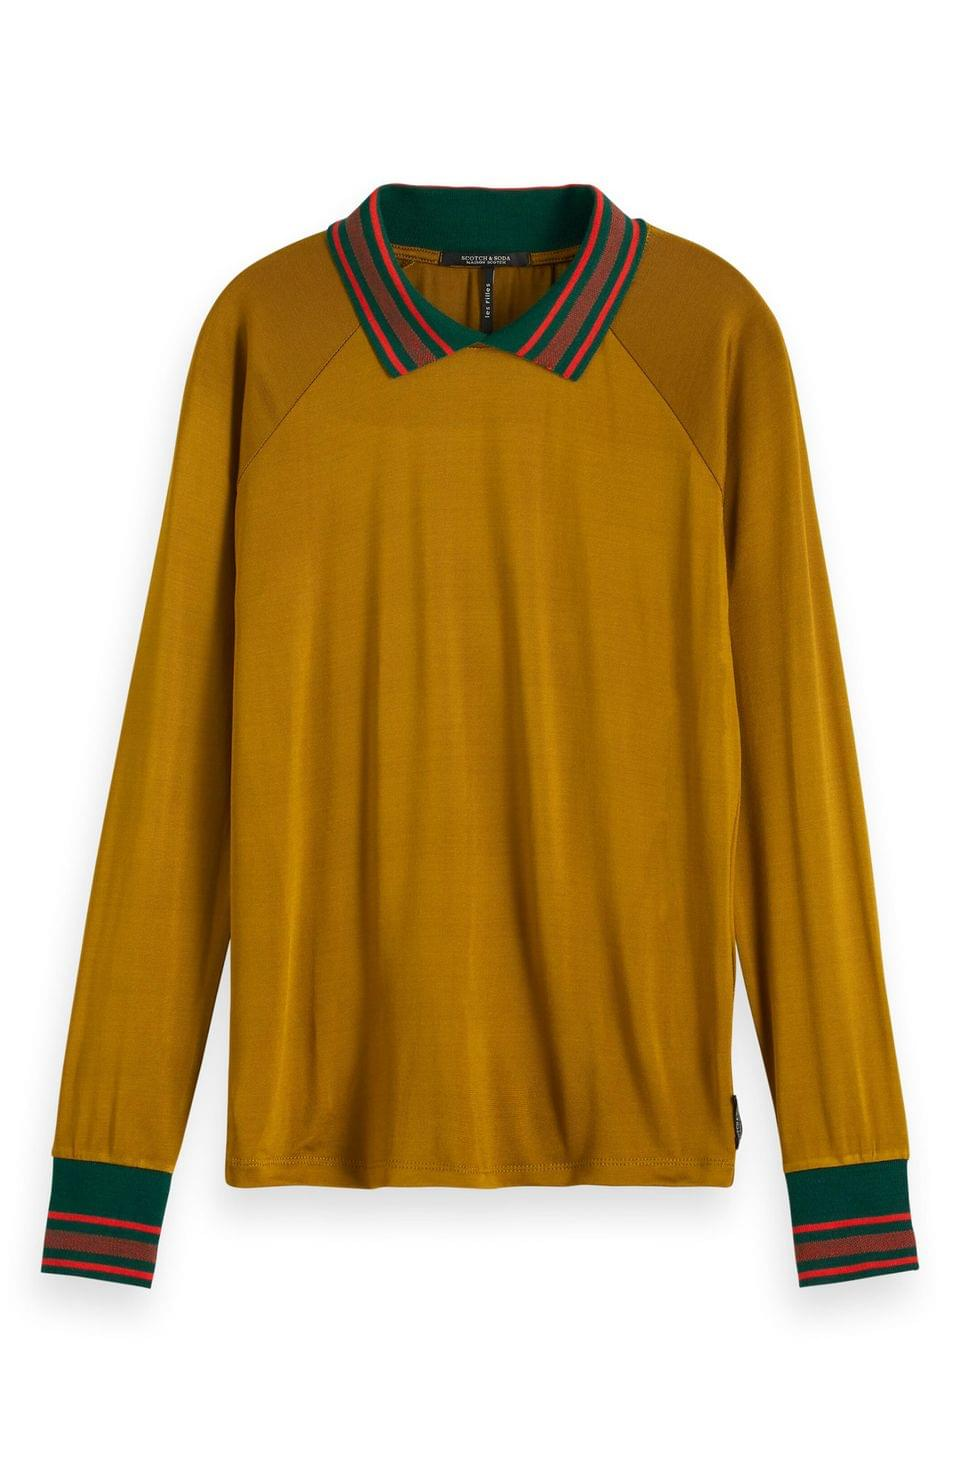 Women's Scotch & Soda Raglan Sleeve Top